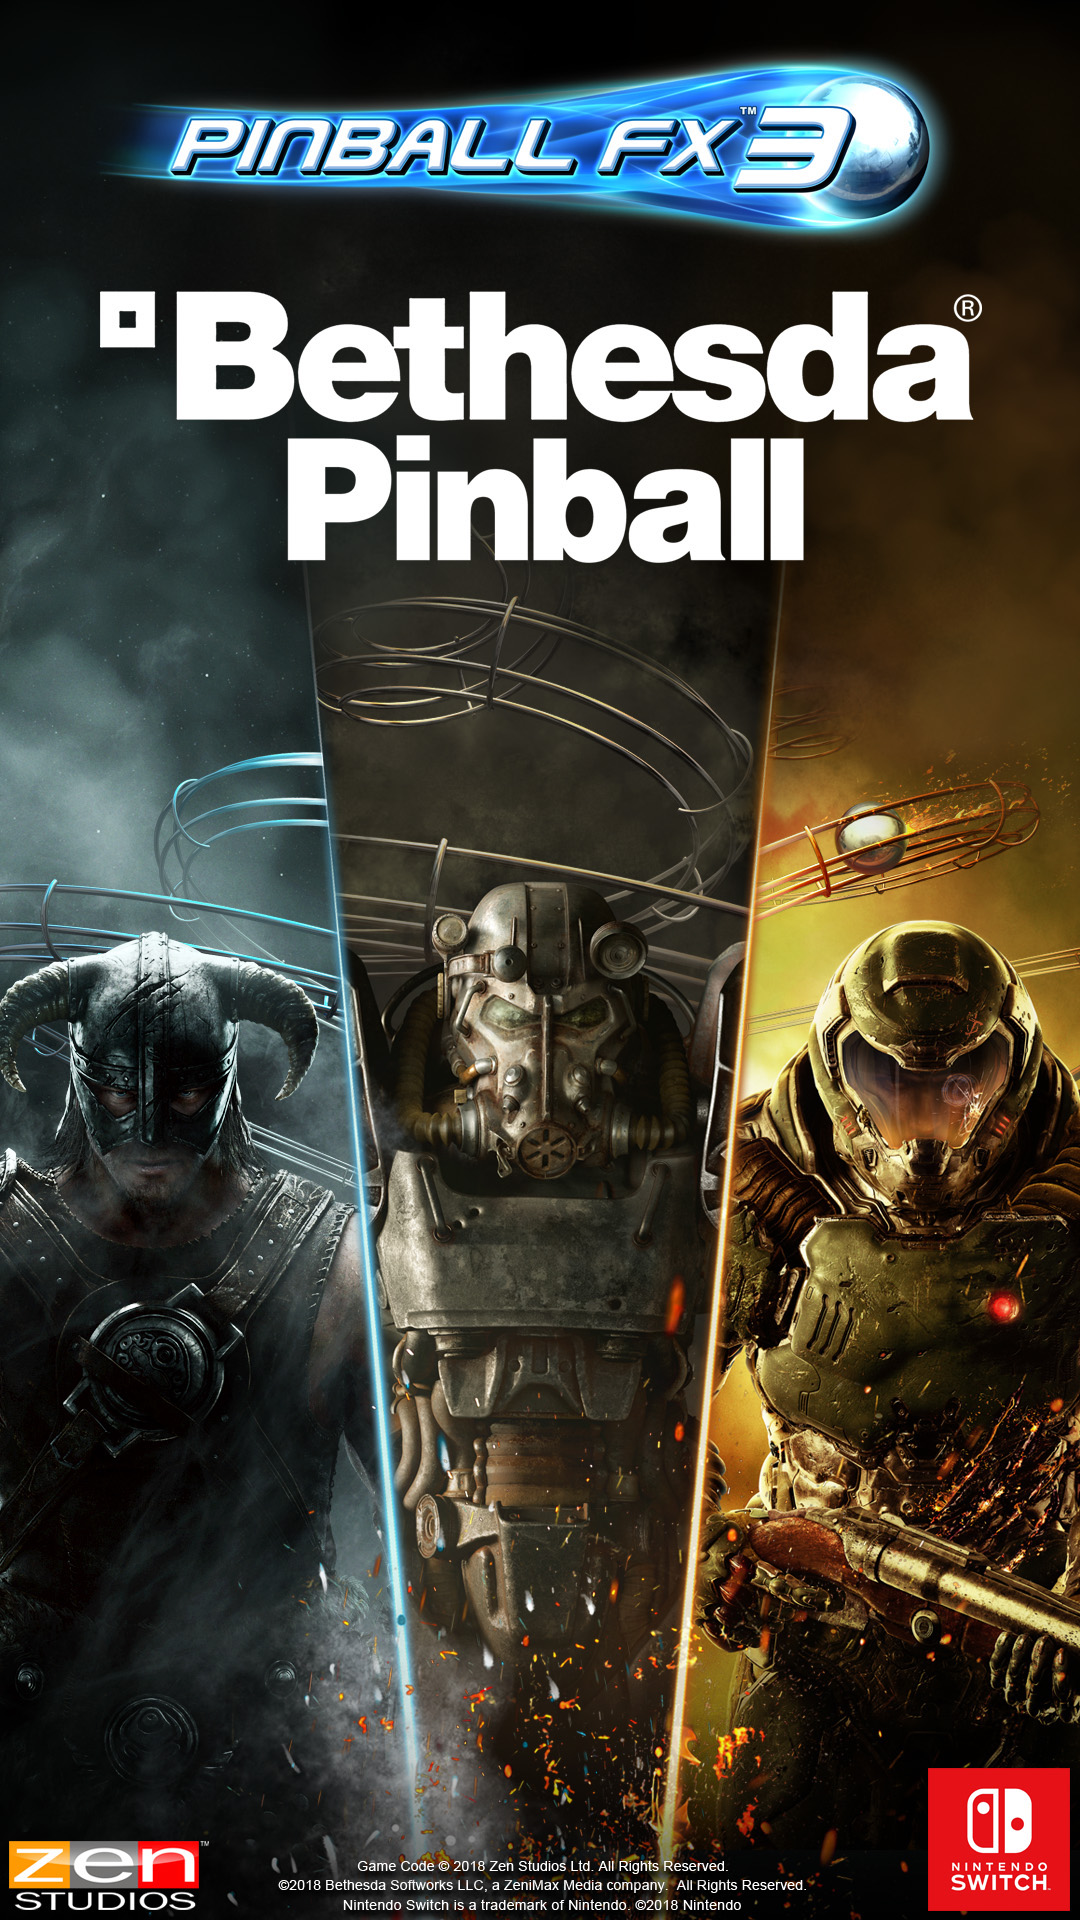 Bethesda tables hit for Pinball FX 3 on the Switch today